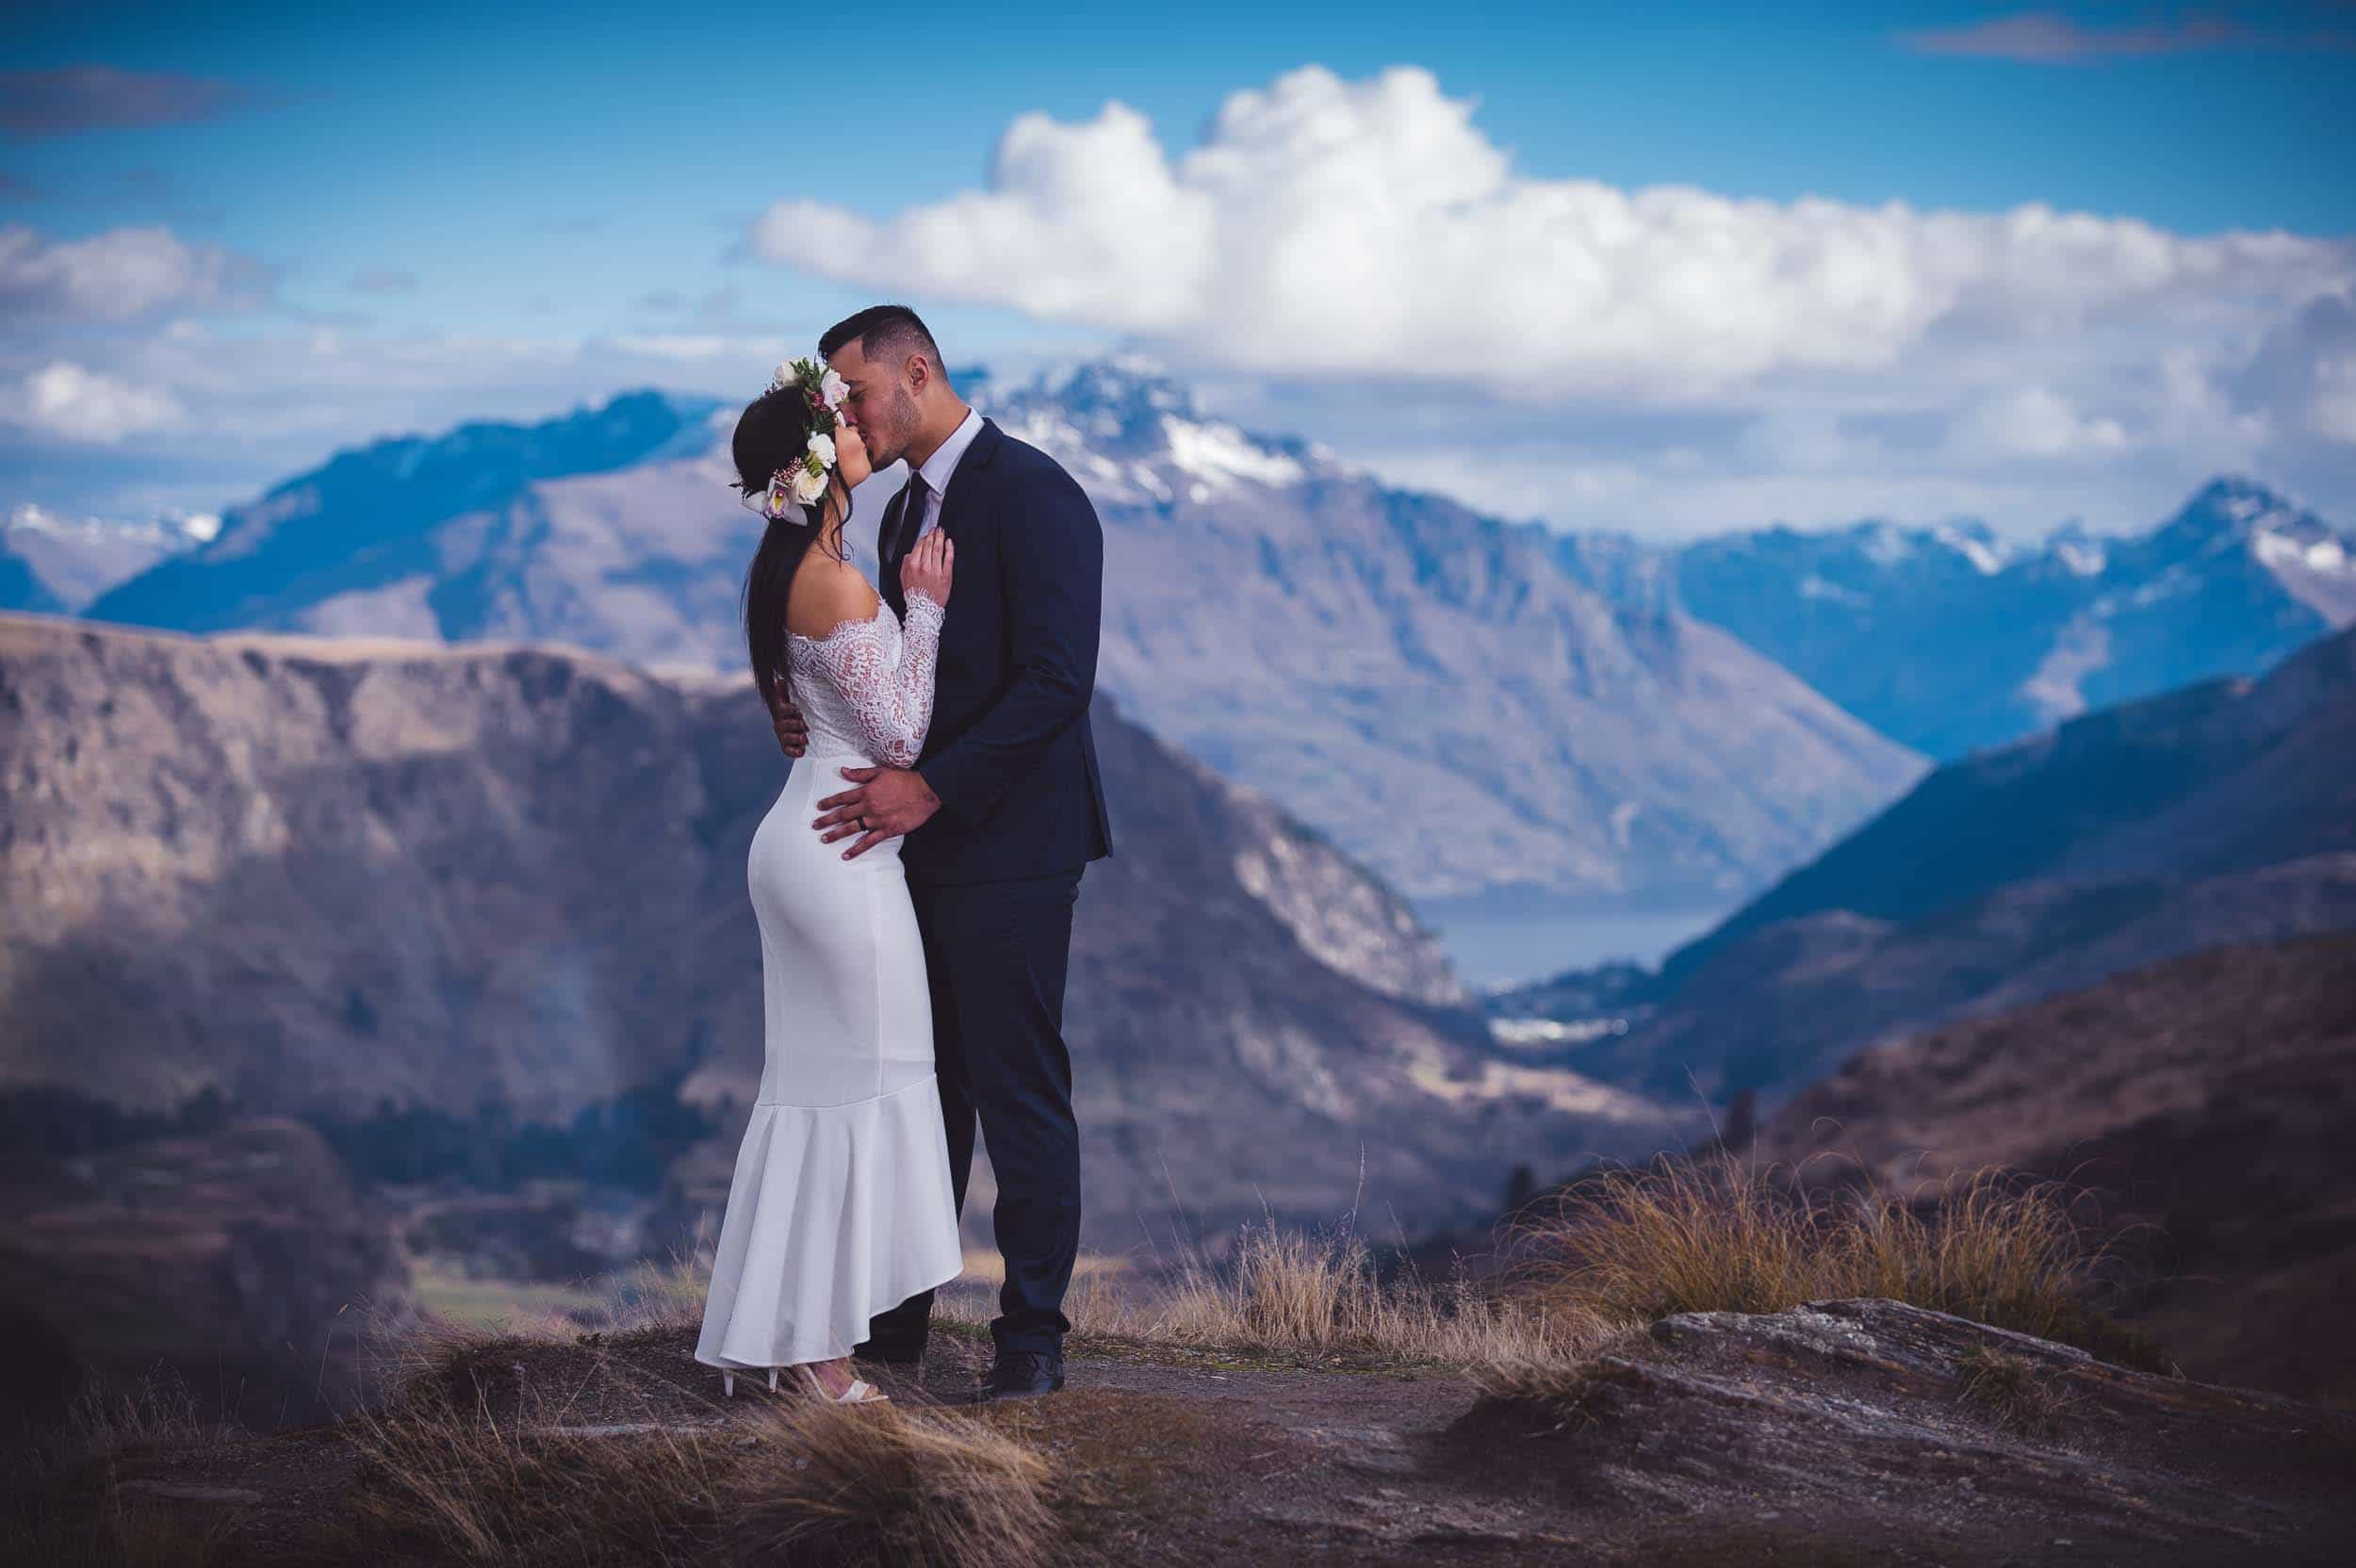 queenstown wedding trends Chapel By The Lake Elopement